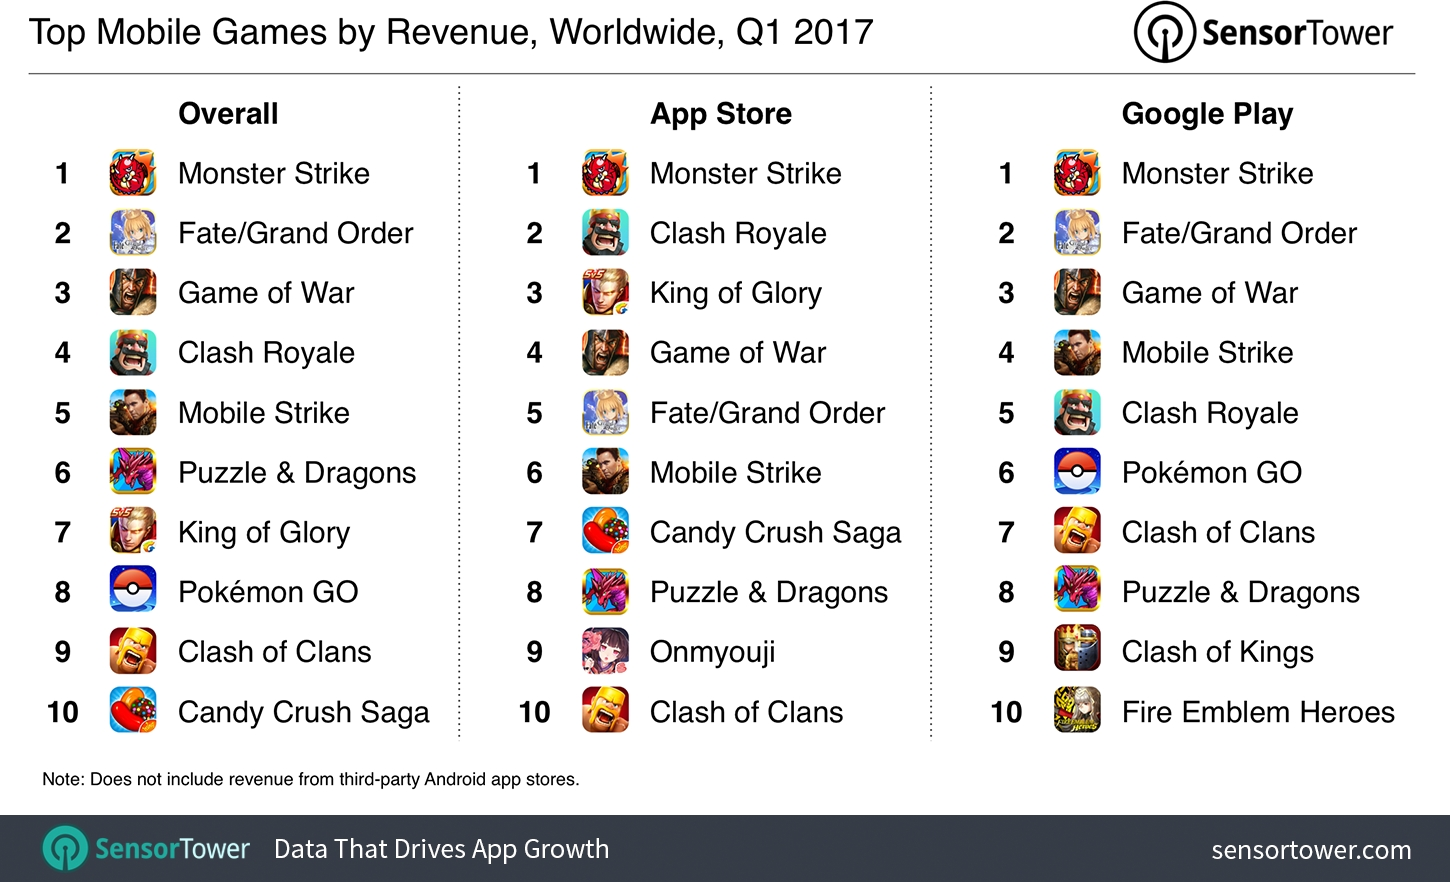 Clash Royale' Is Second Only to 'Monster Strike' in Terms of Q1 2017